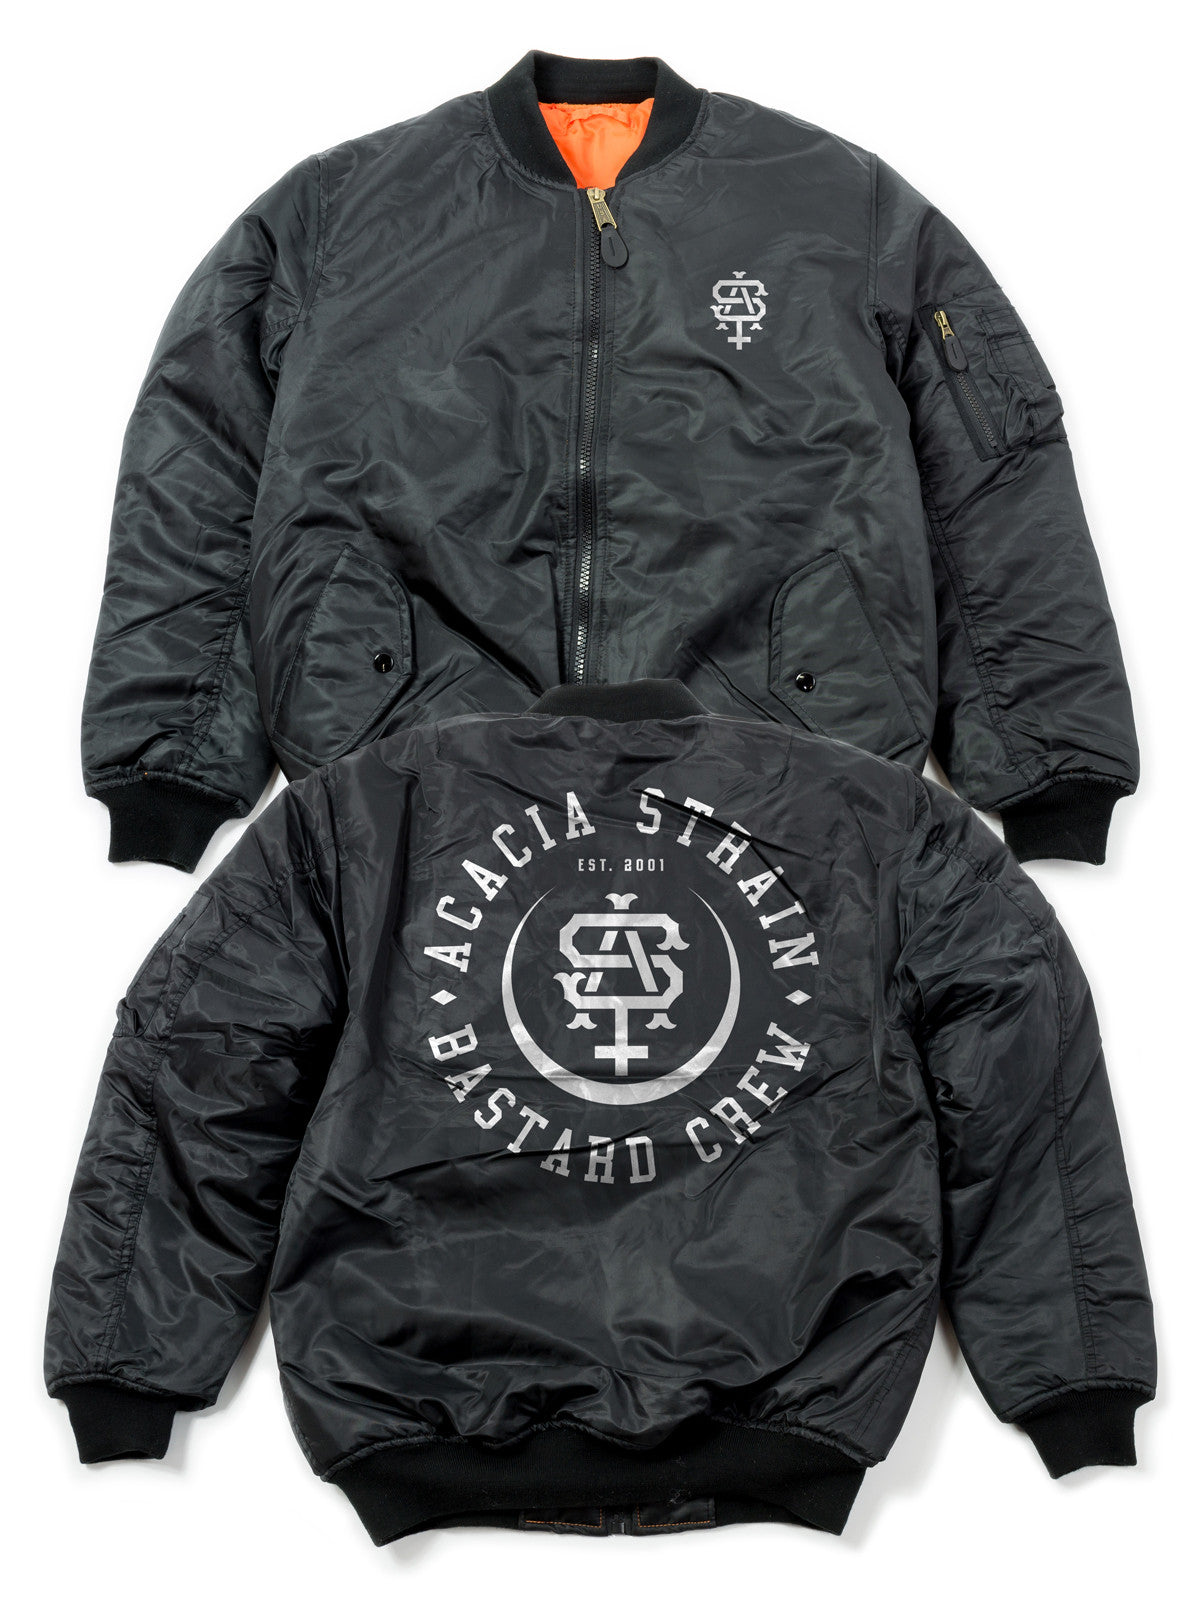 The Acacia Strain - Bastard Crew Bomber Jacket - MerchLimited - 1